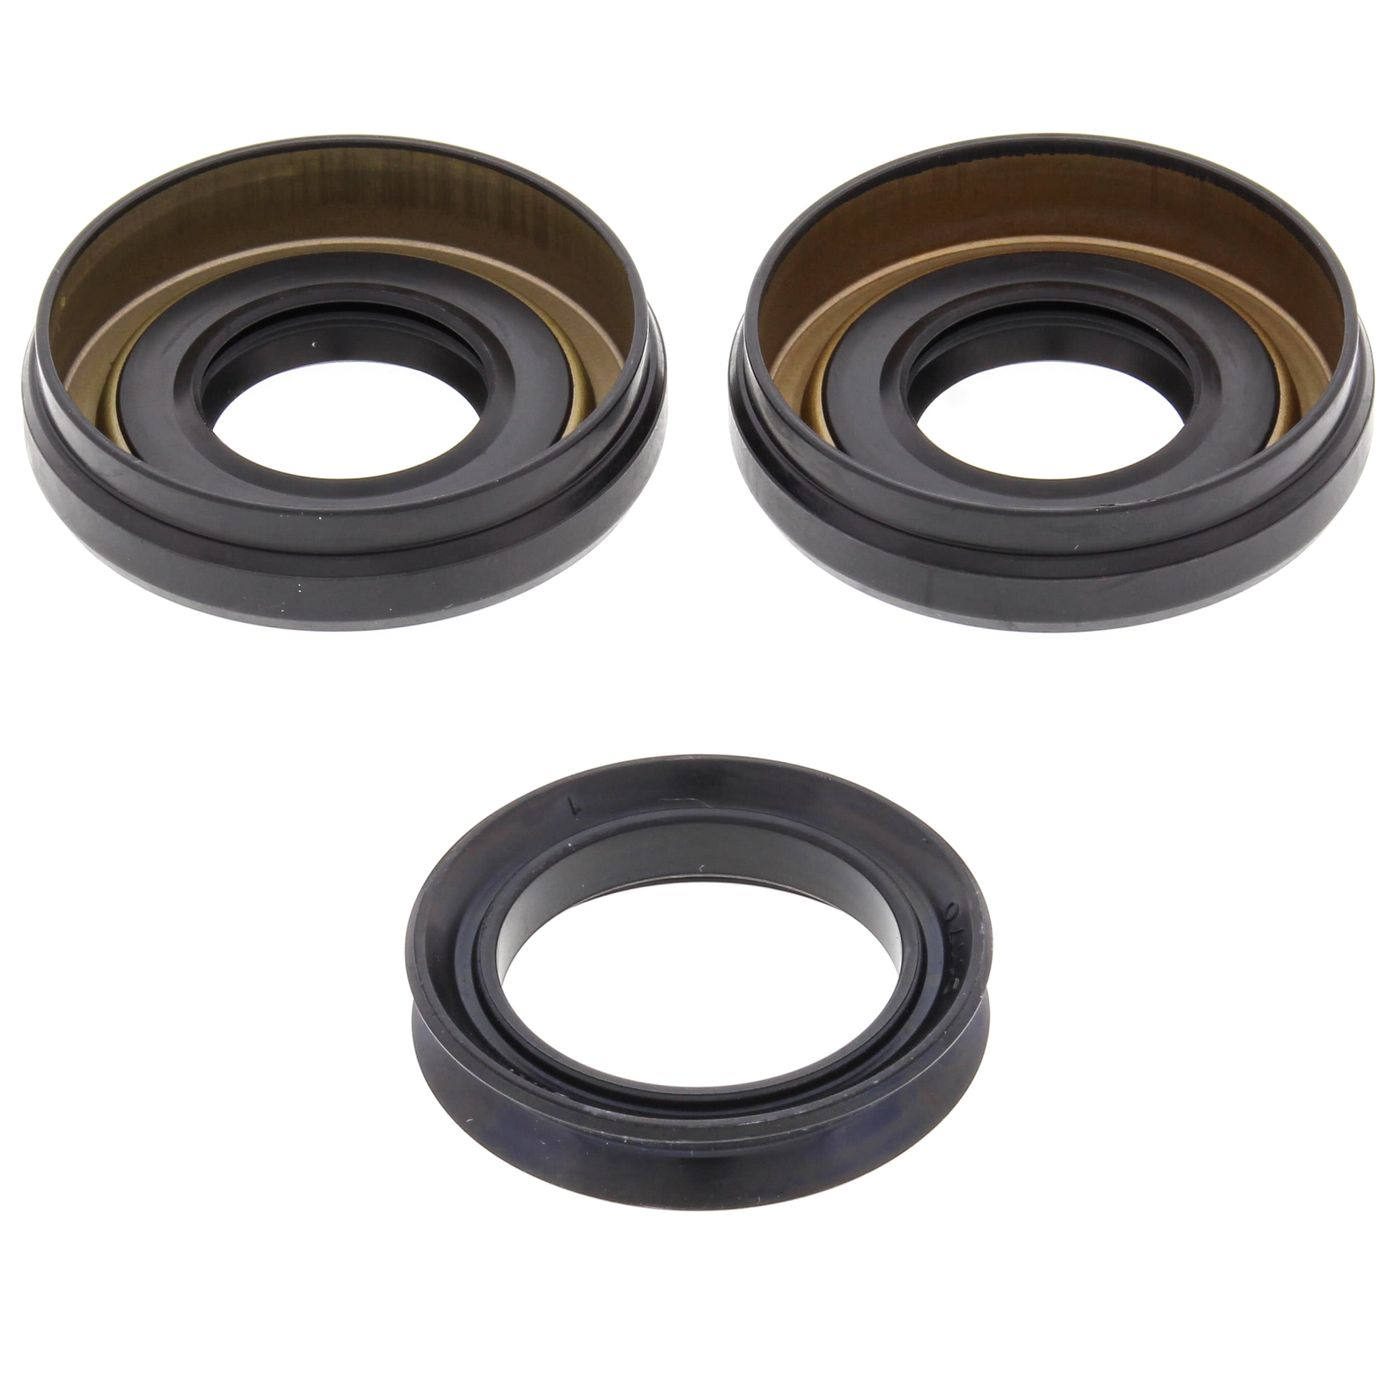 Wrp Diff Seal Kits - WRP252060-5 image